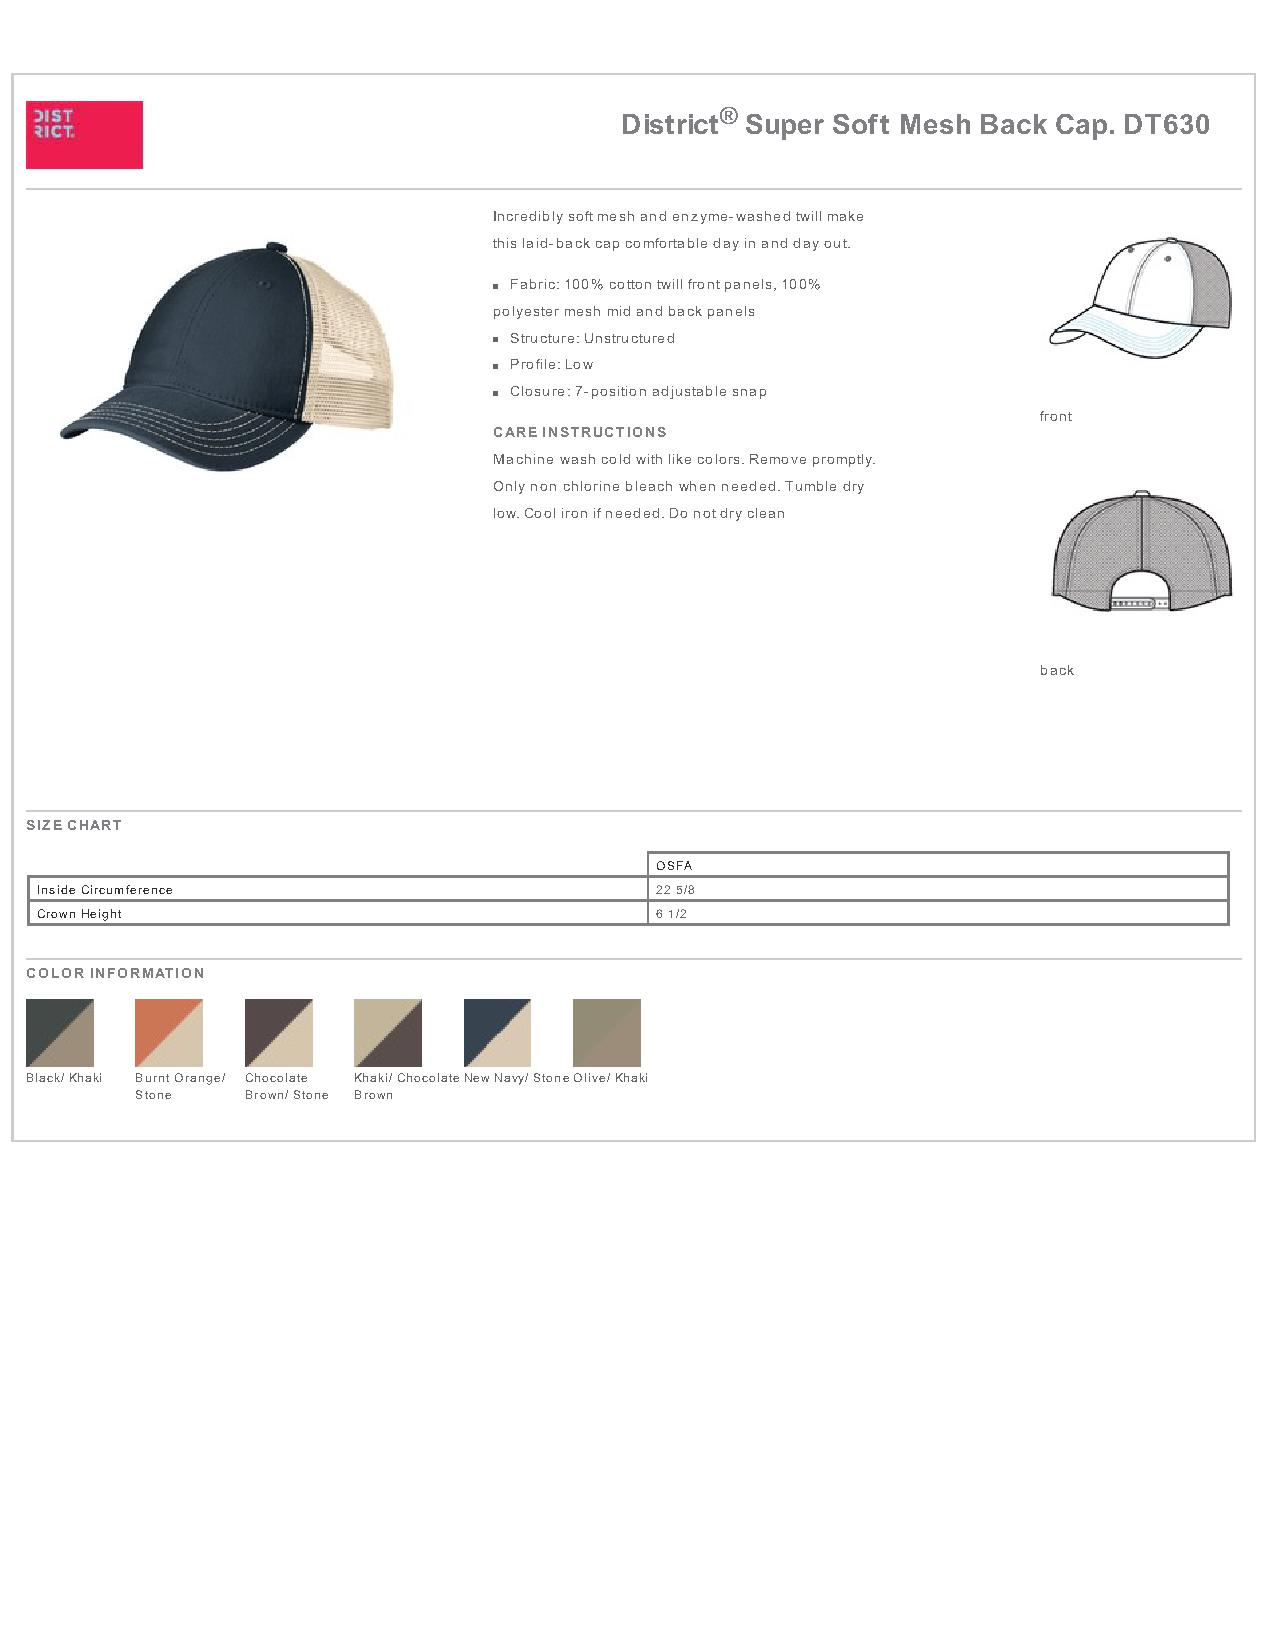 ff66567caa5 Popular Designs. custom design of District DT630 Super Soft Mesh Back Cap